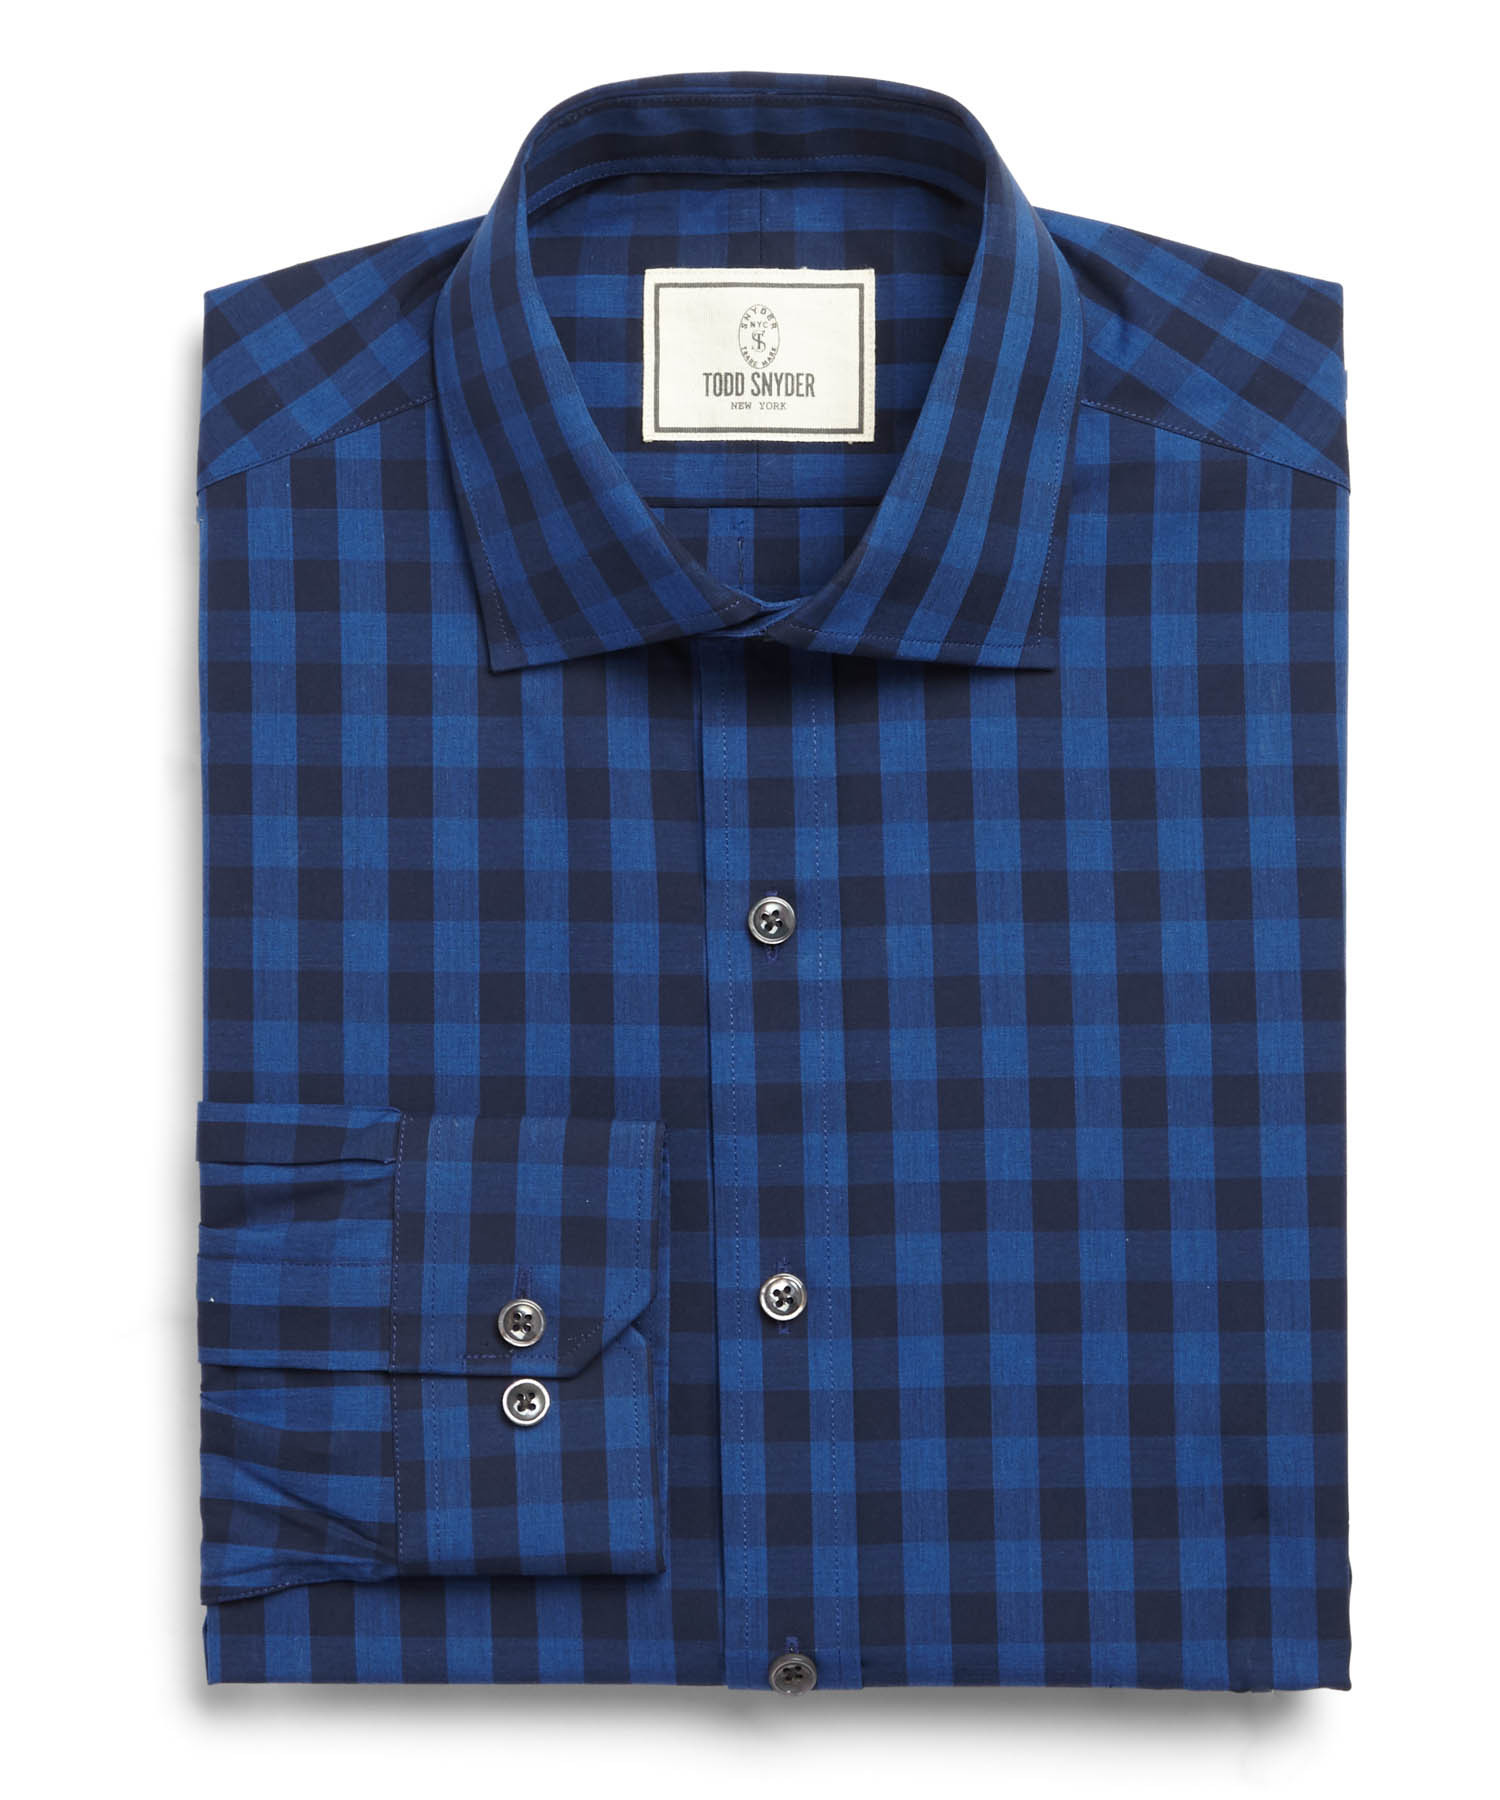 Todd Snyder Spread Collar Dress Shirt In Navy Plaid In